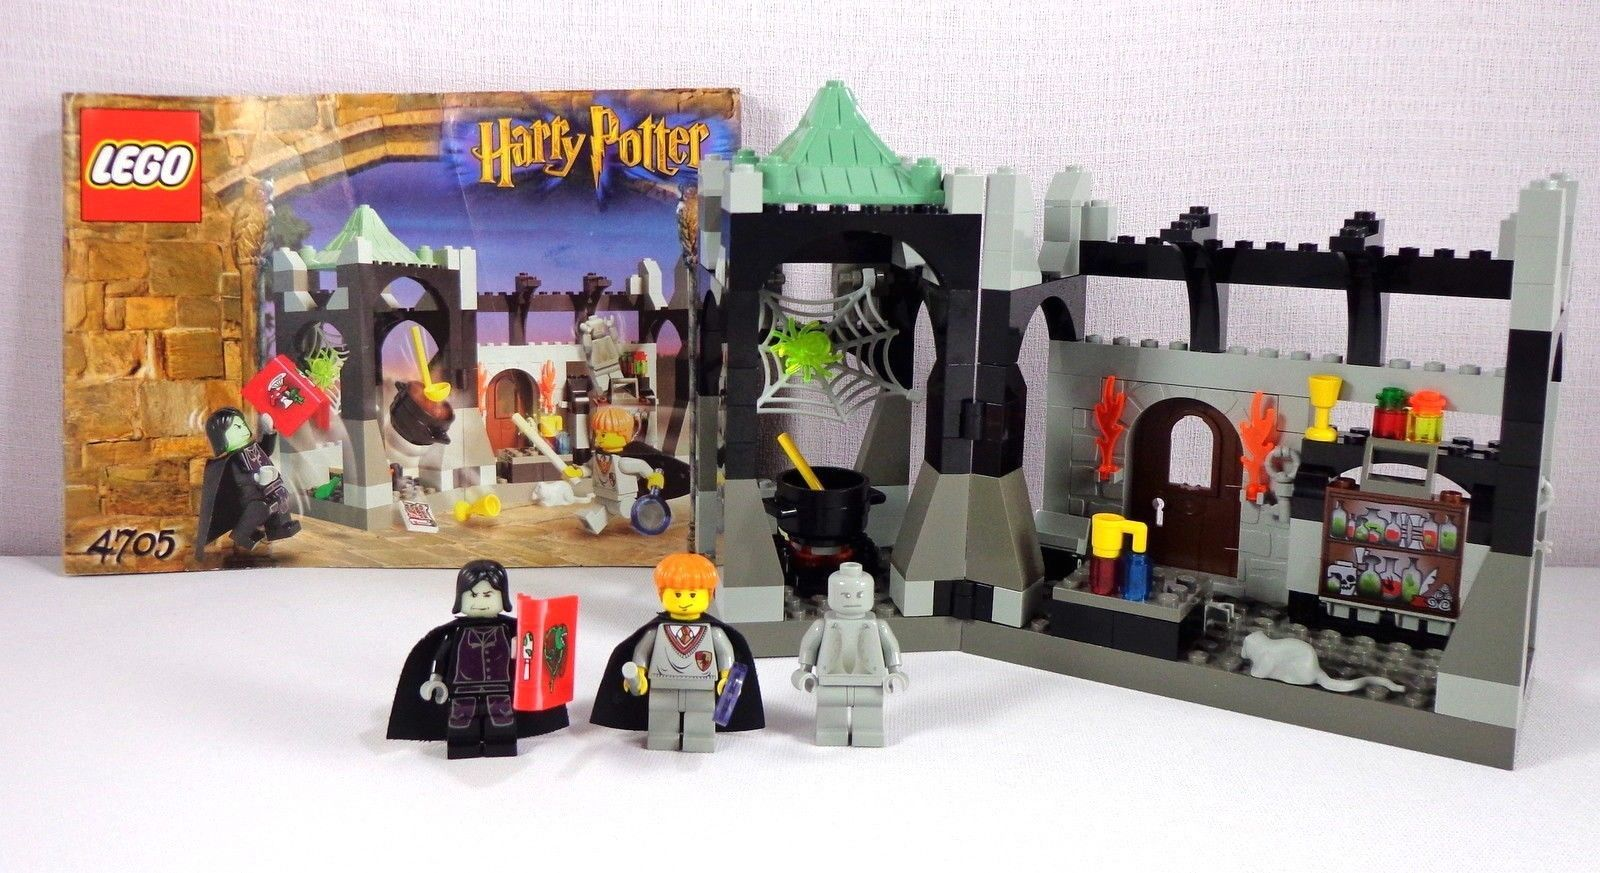 Lego 4705 Harry Potter Snapes Class by LEGO